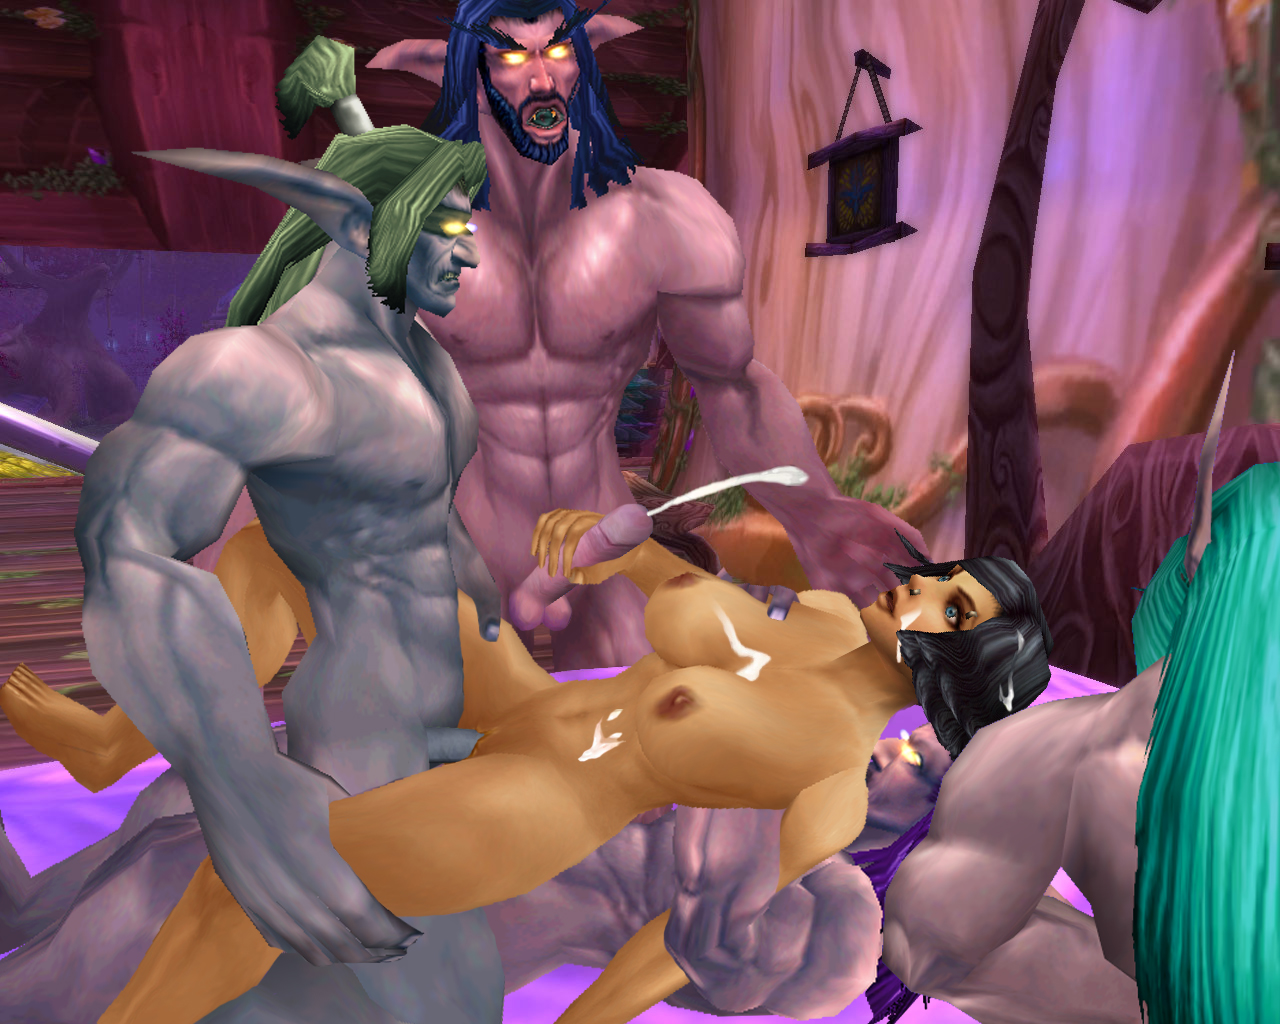 Nude elf toon orc hentai videos